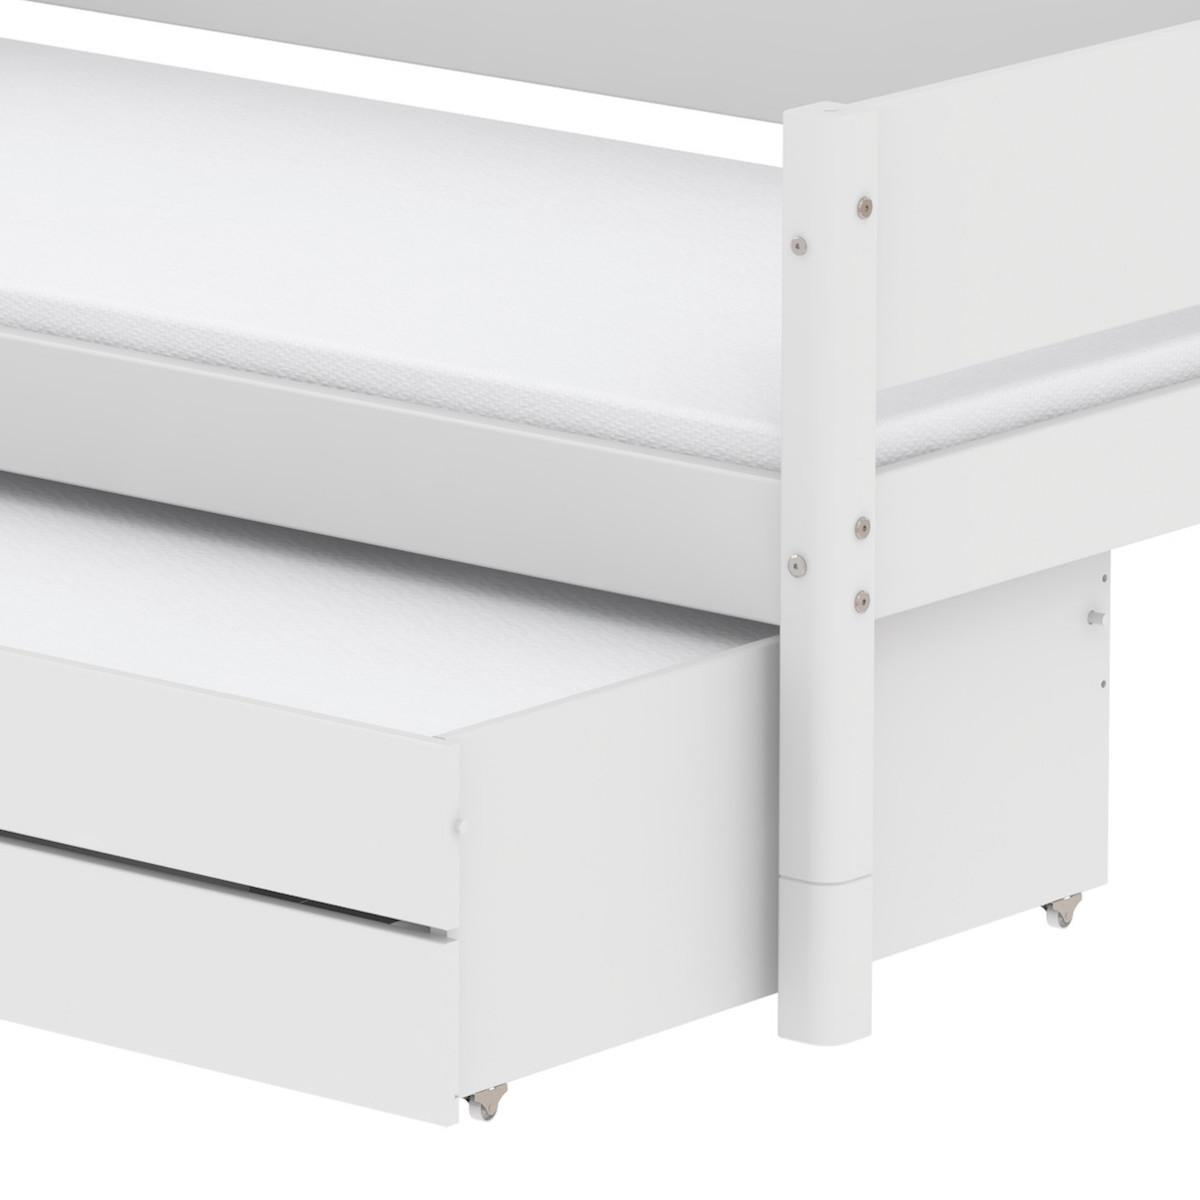 Lit enfant simple 90x200cm lit gigogne-2 tiroirs WHITE Flexa blanc